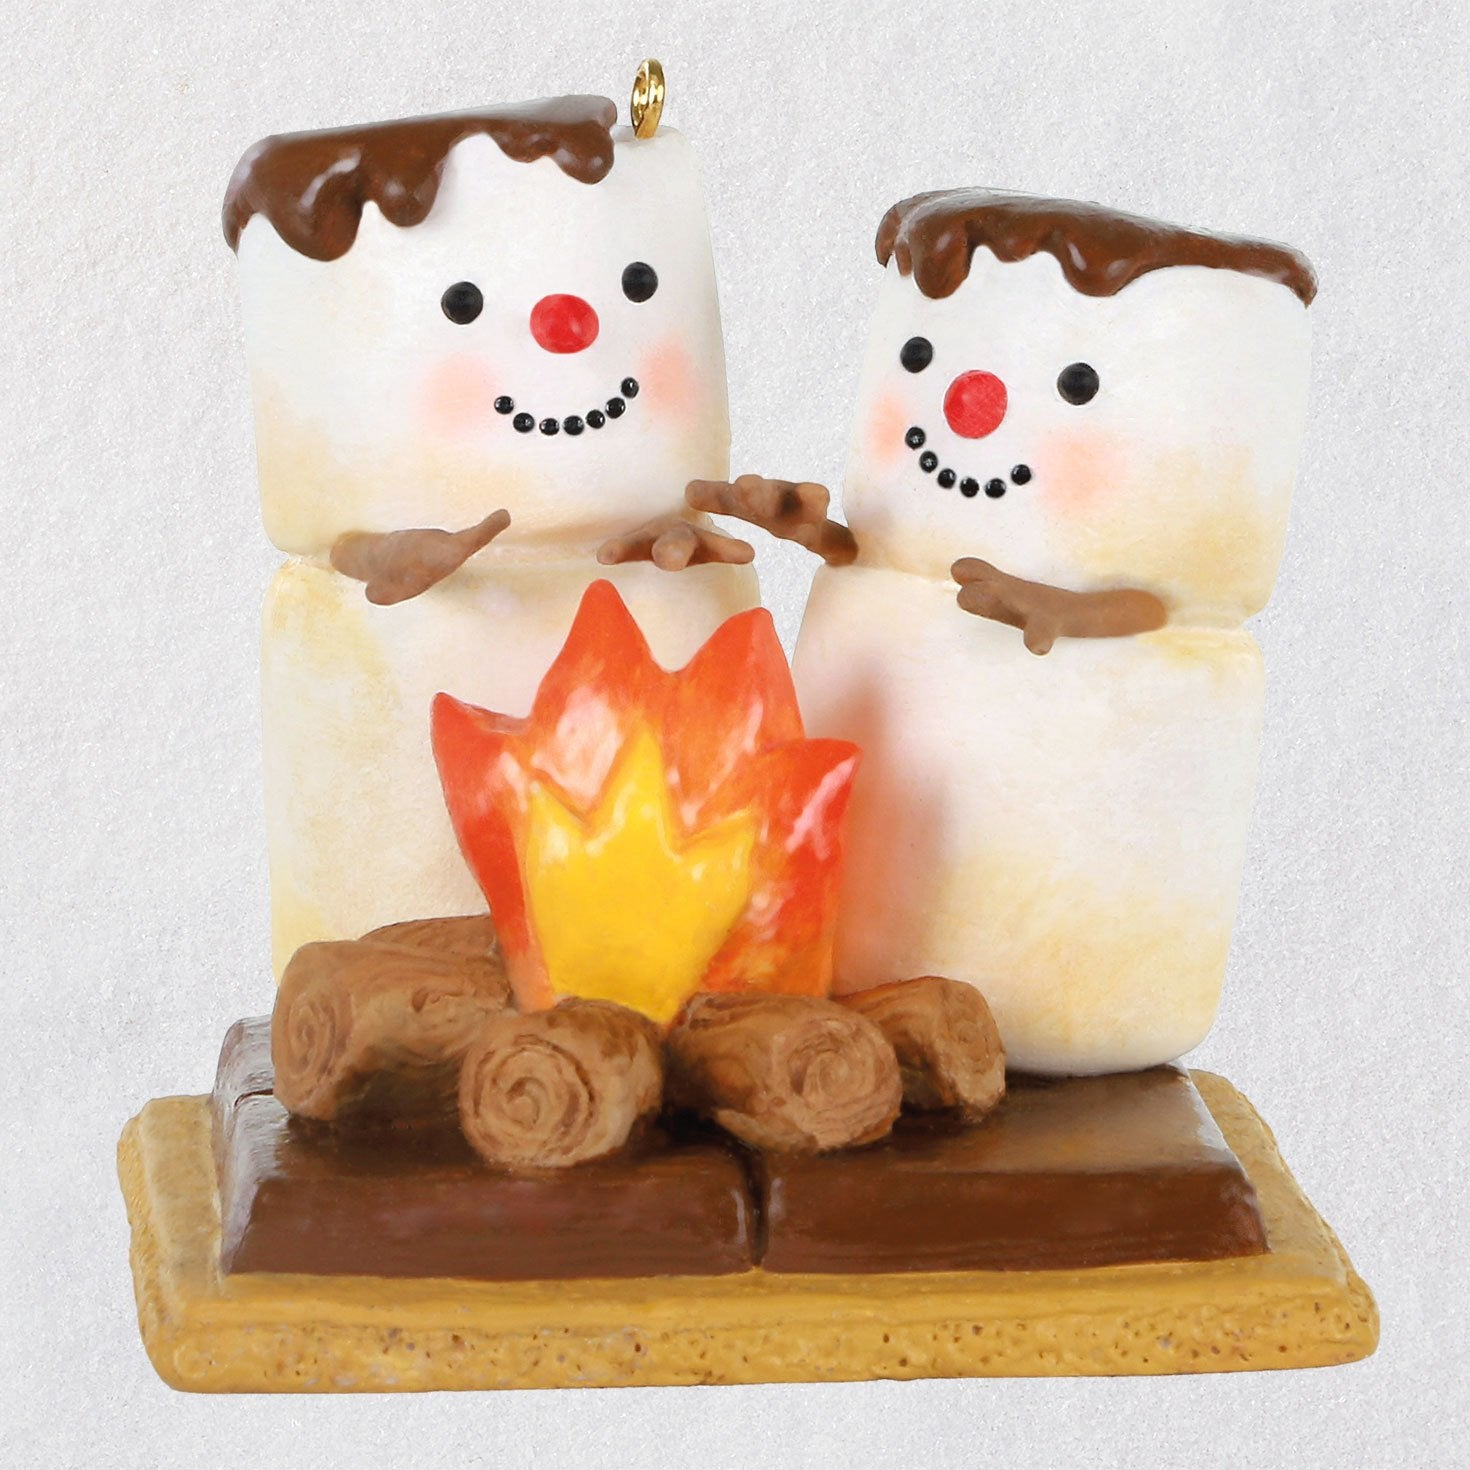 Hallmark S'more Camping Fun Ornament